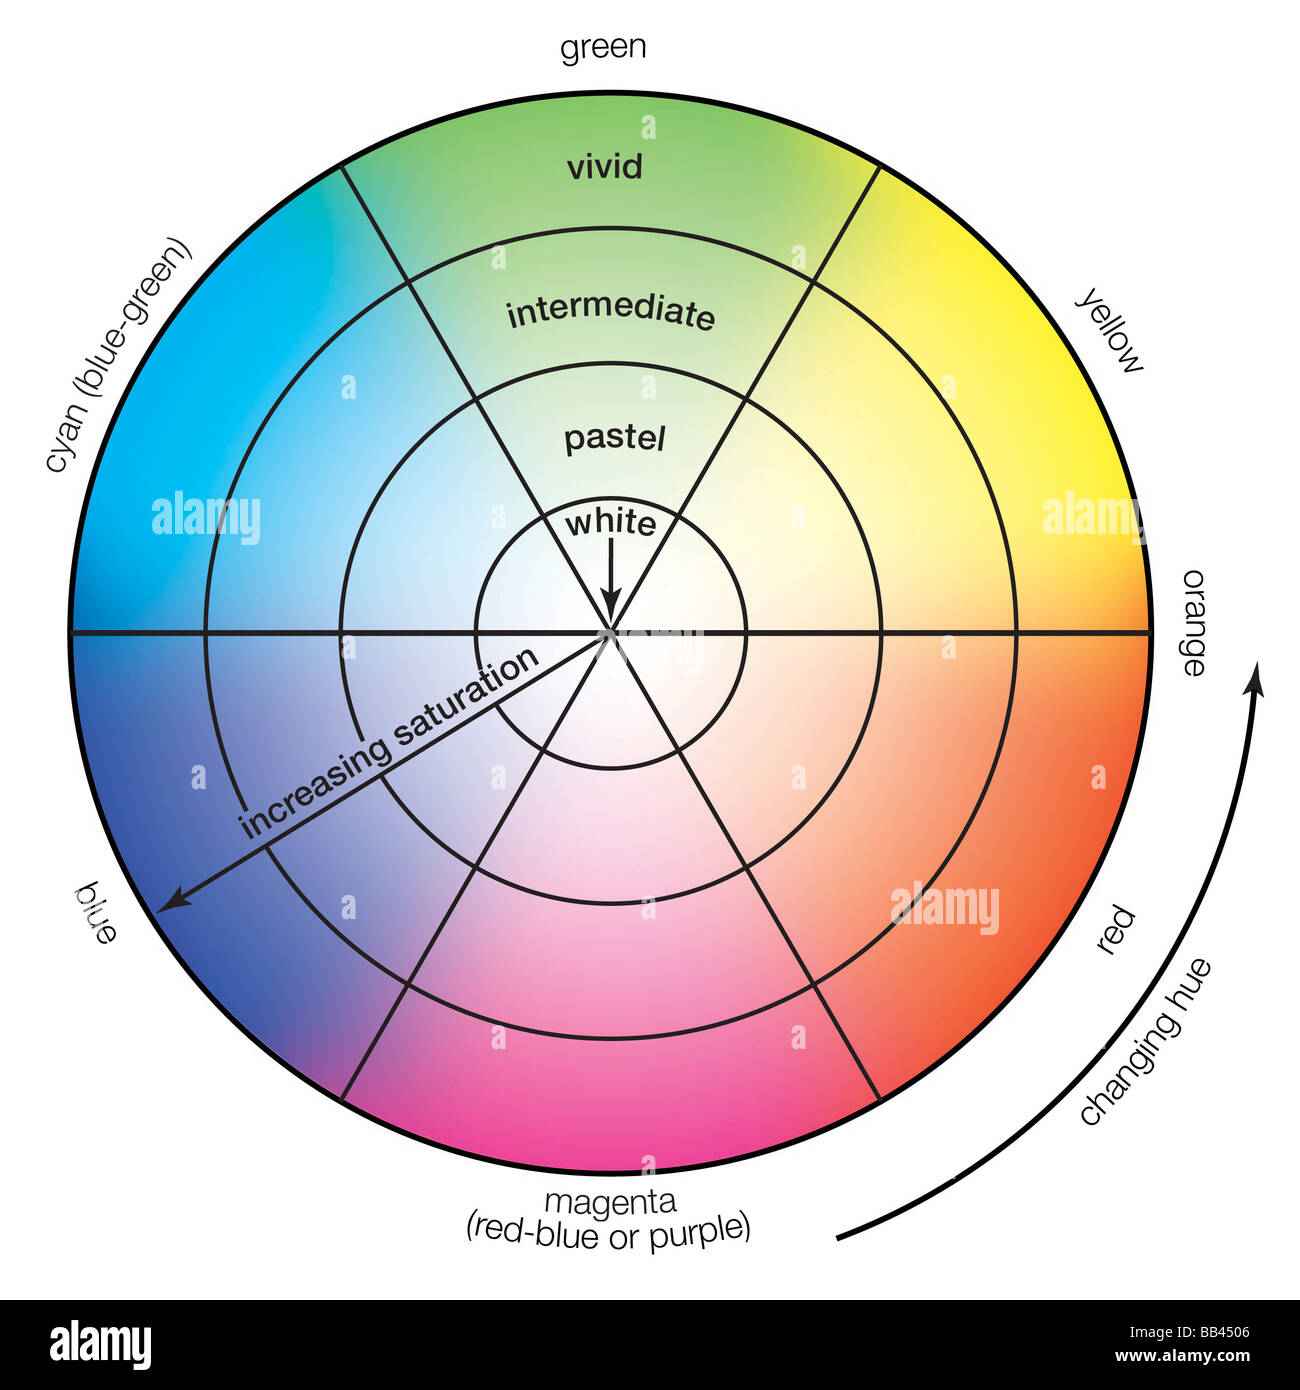 Colour Wheel Demonstrating Hue And Saturation Changes Perceived Together They Make Up The Chrominance